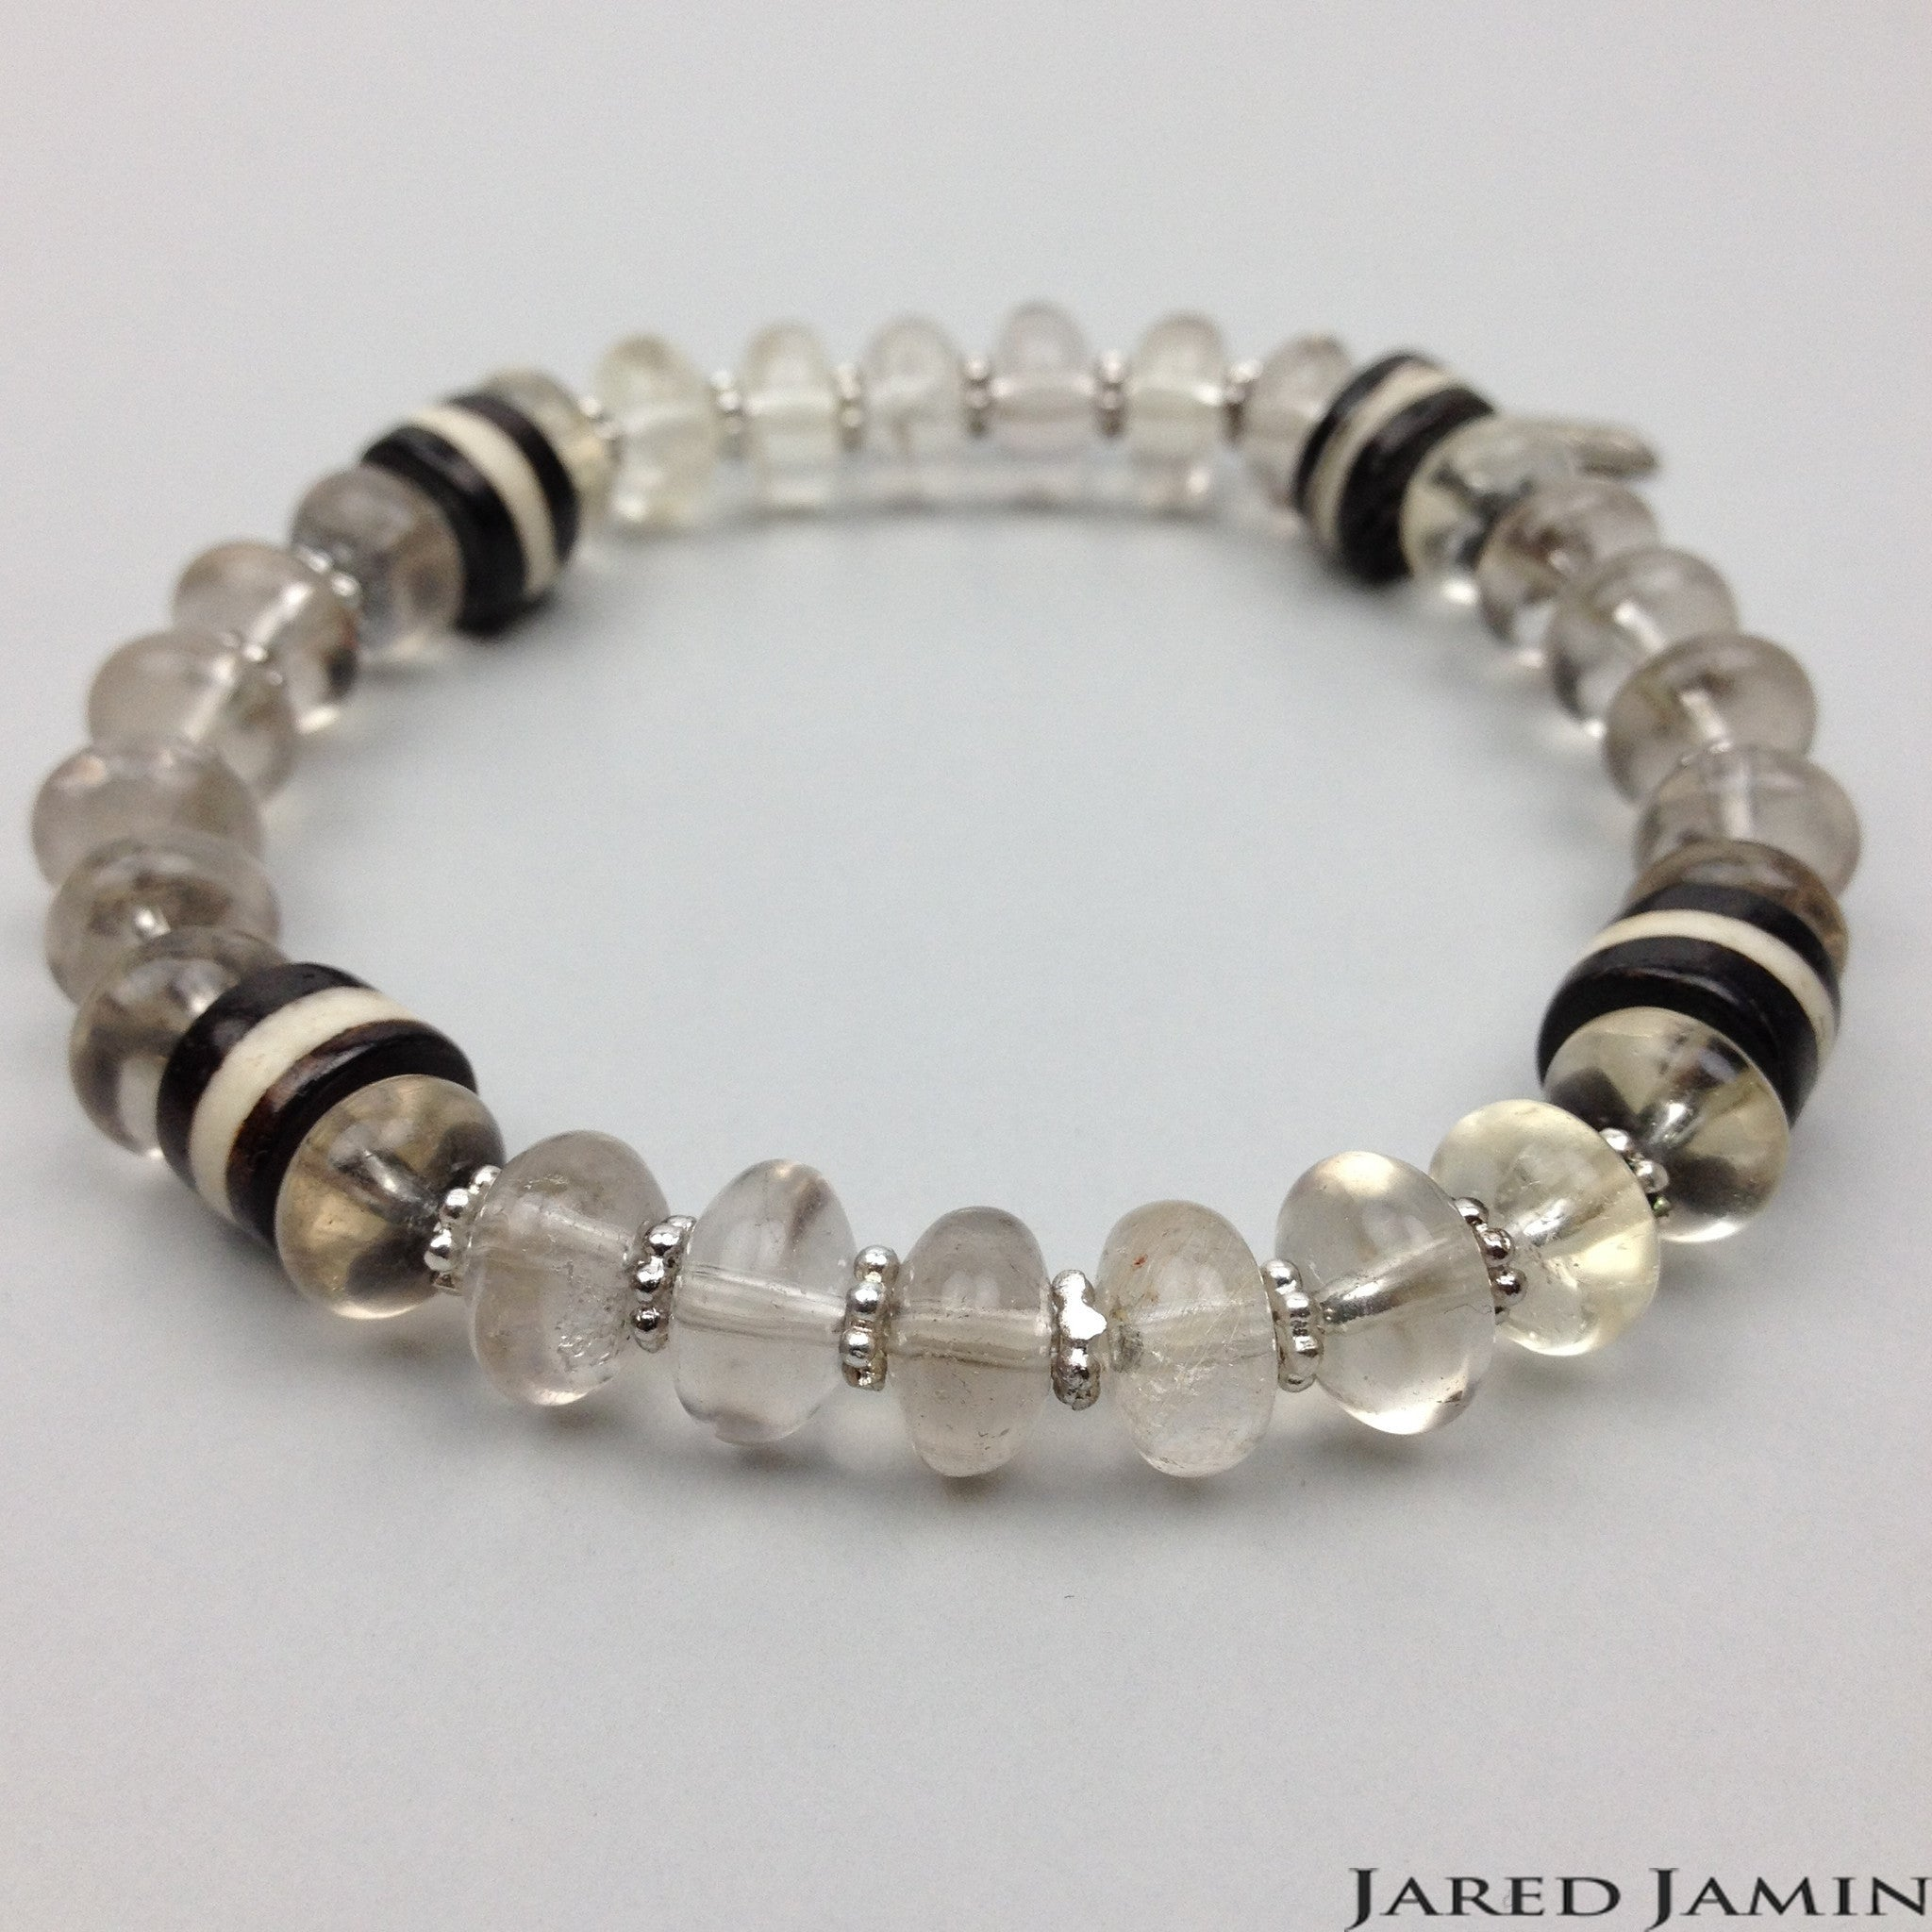 Clear Winner Bracelet JARED JAMIN